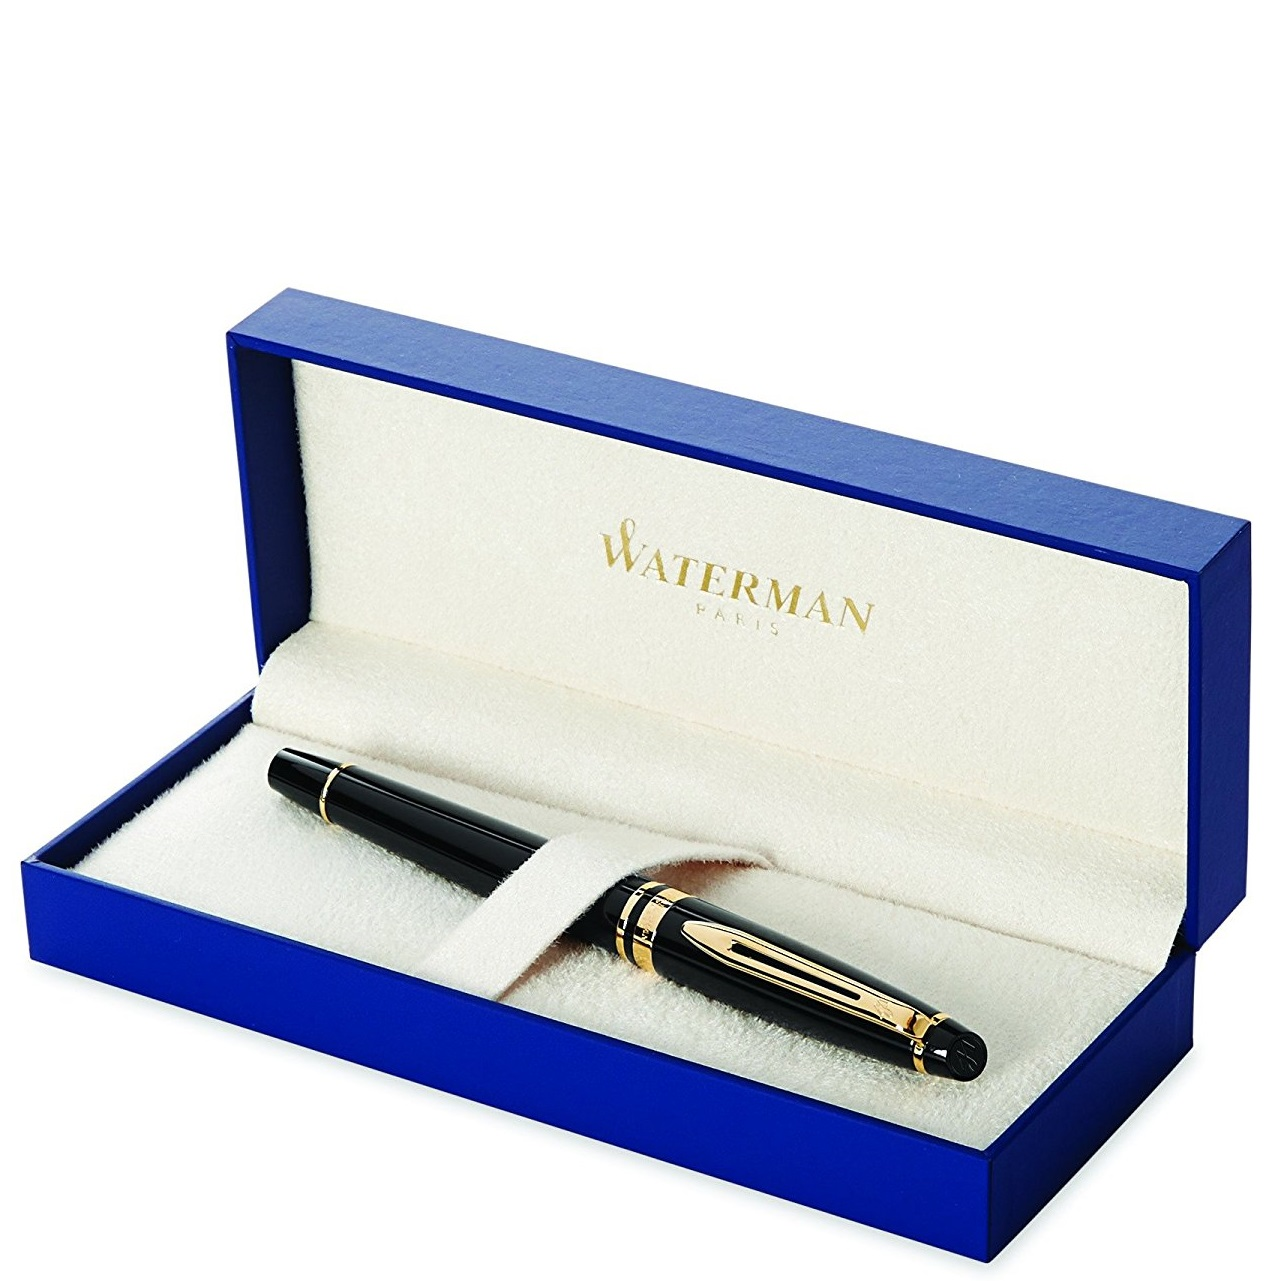 Waterman Expert Black Fountain Pen